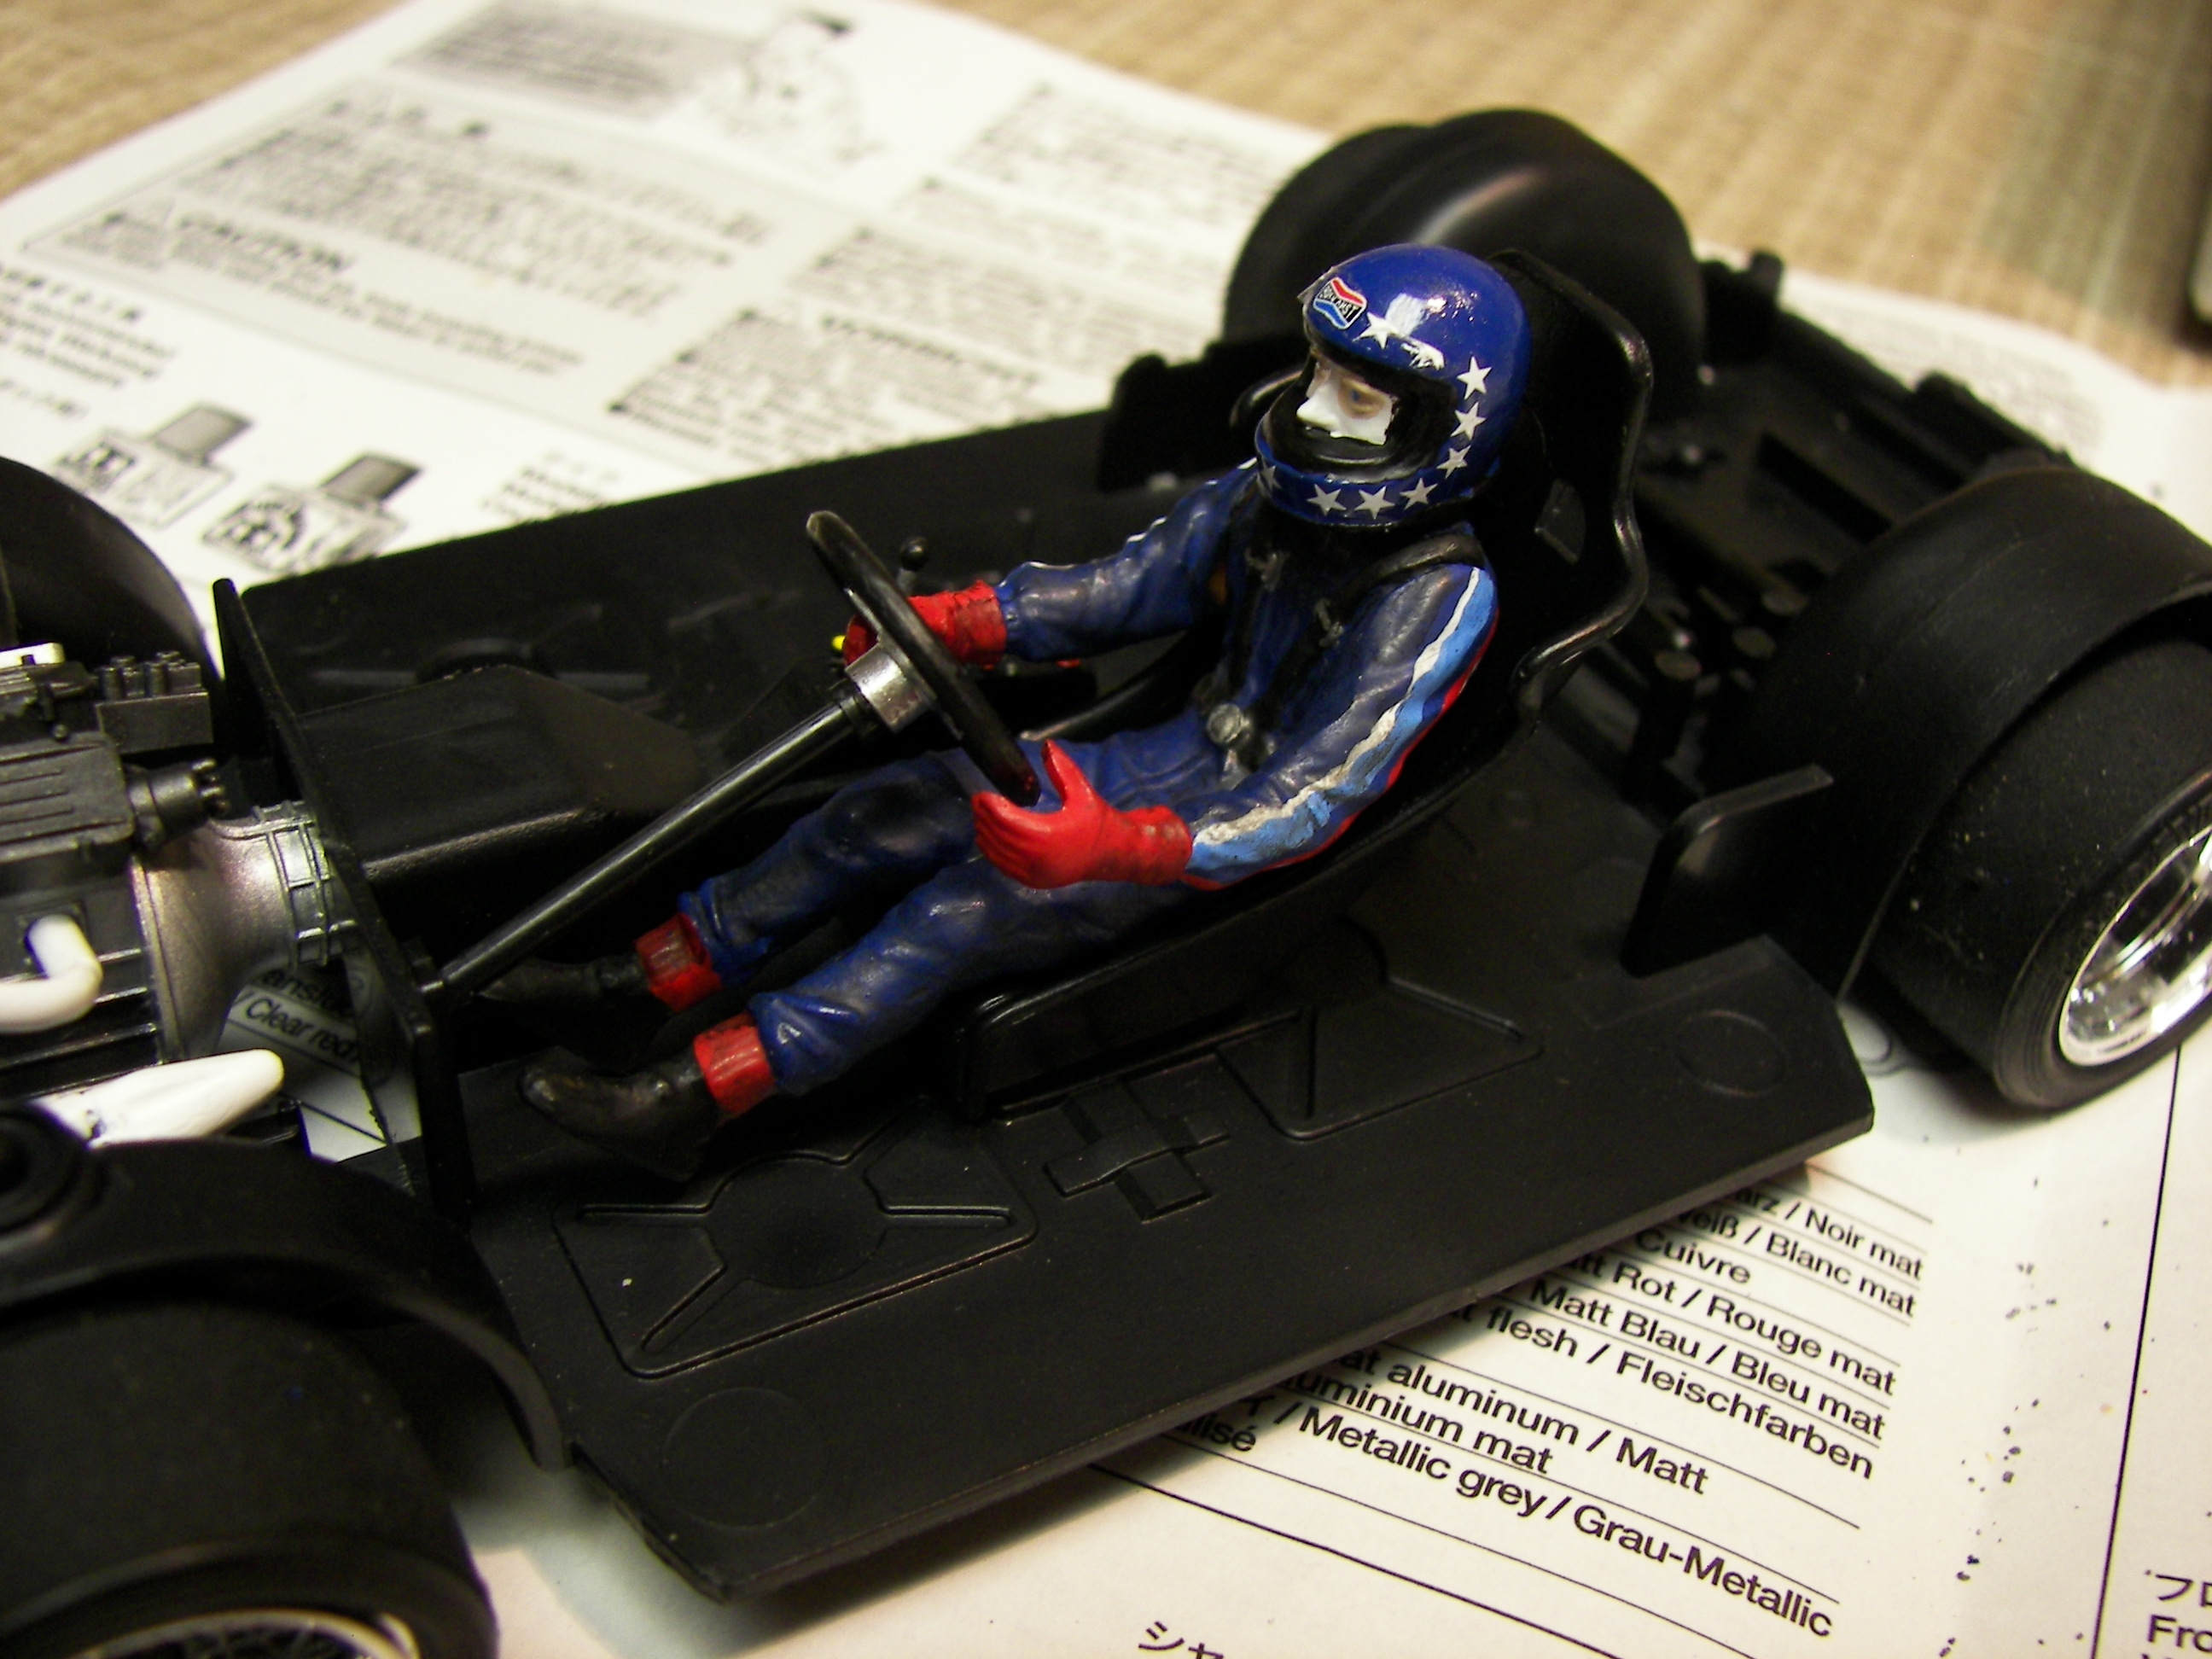 Hans J Stuck from Tamiya BMW 320i GR5 kit | Flickr - Photo Sharing!